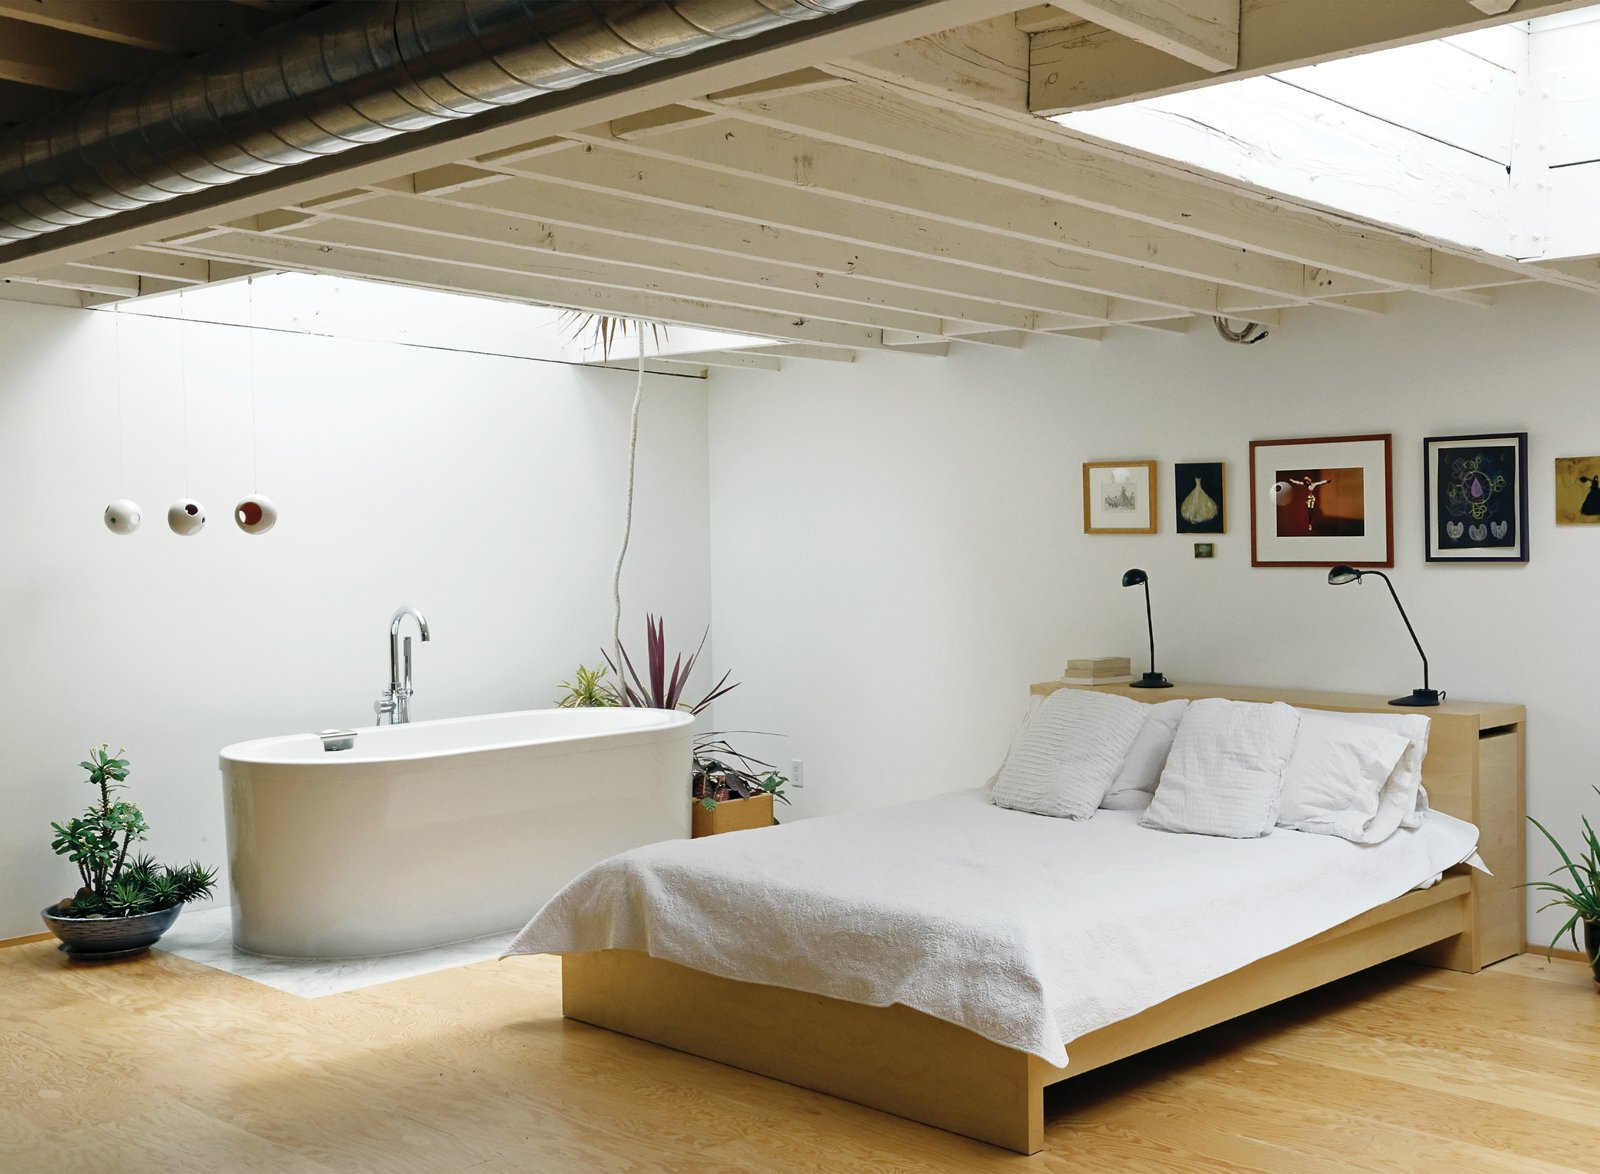 The bedroom mixes a bed and lamps from Ikea with a deep, luxurious bathtub (an inexpensive model from Neptune). The artworks include original prints by New York artist Franco Mondini-Ruiz.  Spaces Transformed by Interior Plants by William Harrison from An Art Studio That Would Make Picasso Jealous